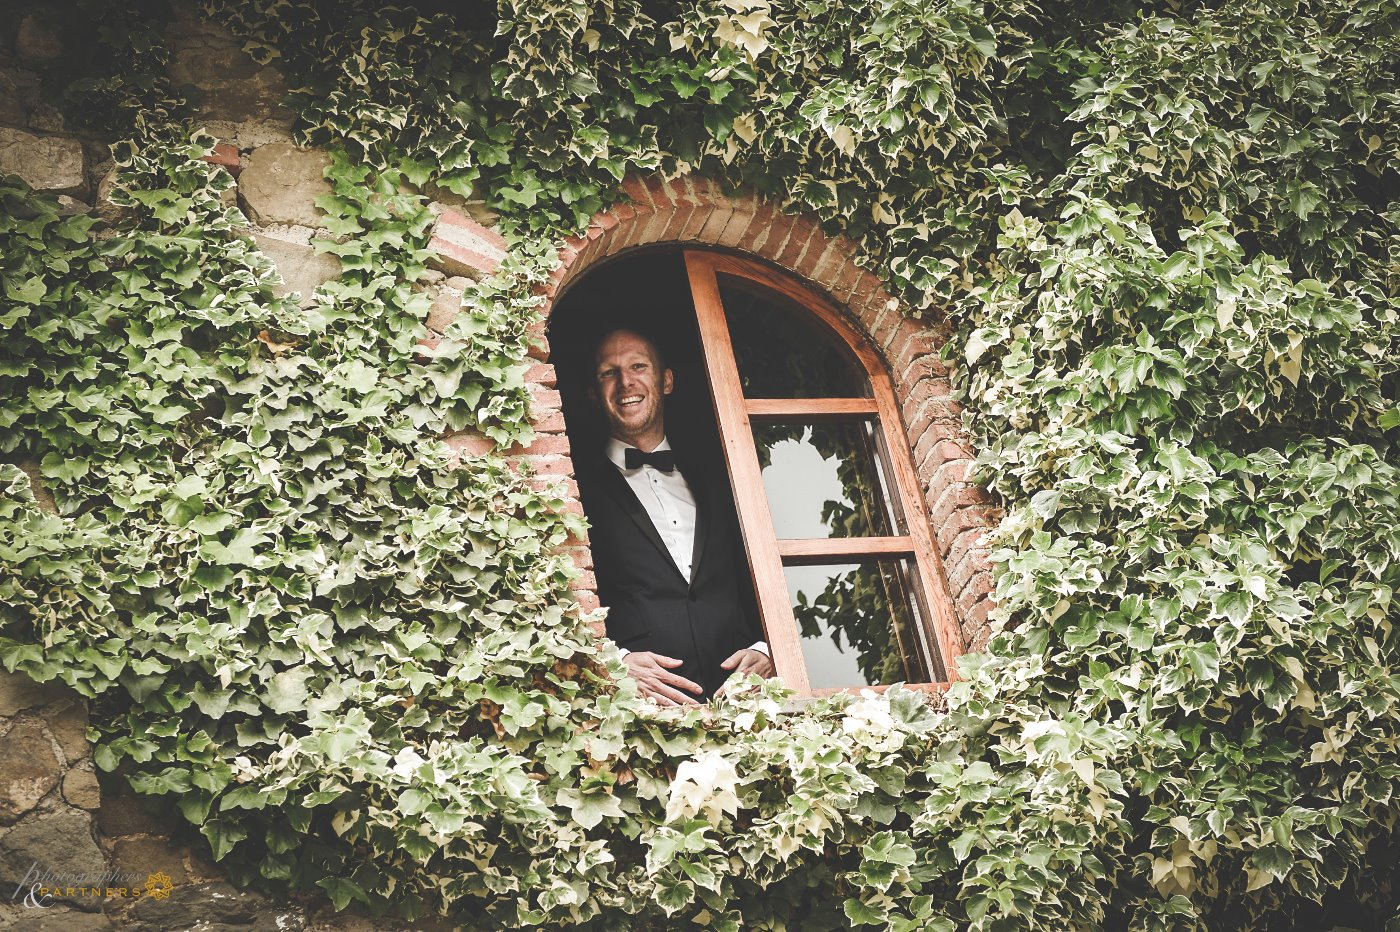 photographers_weddings_chianti_03.jpg